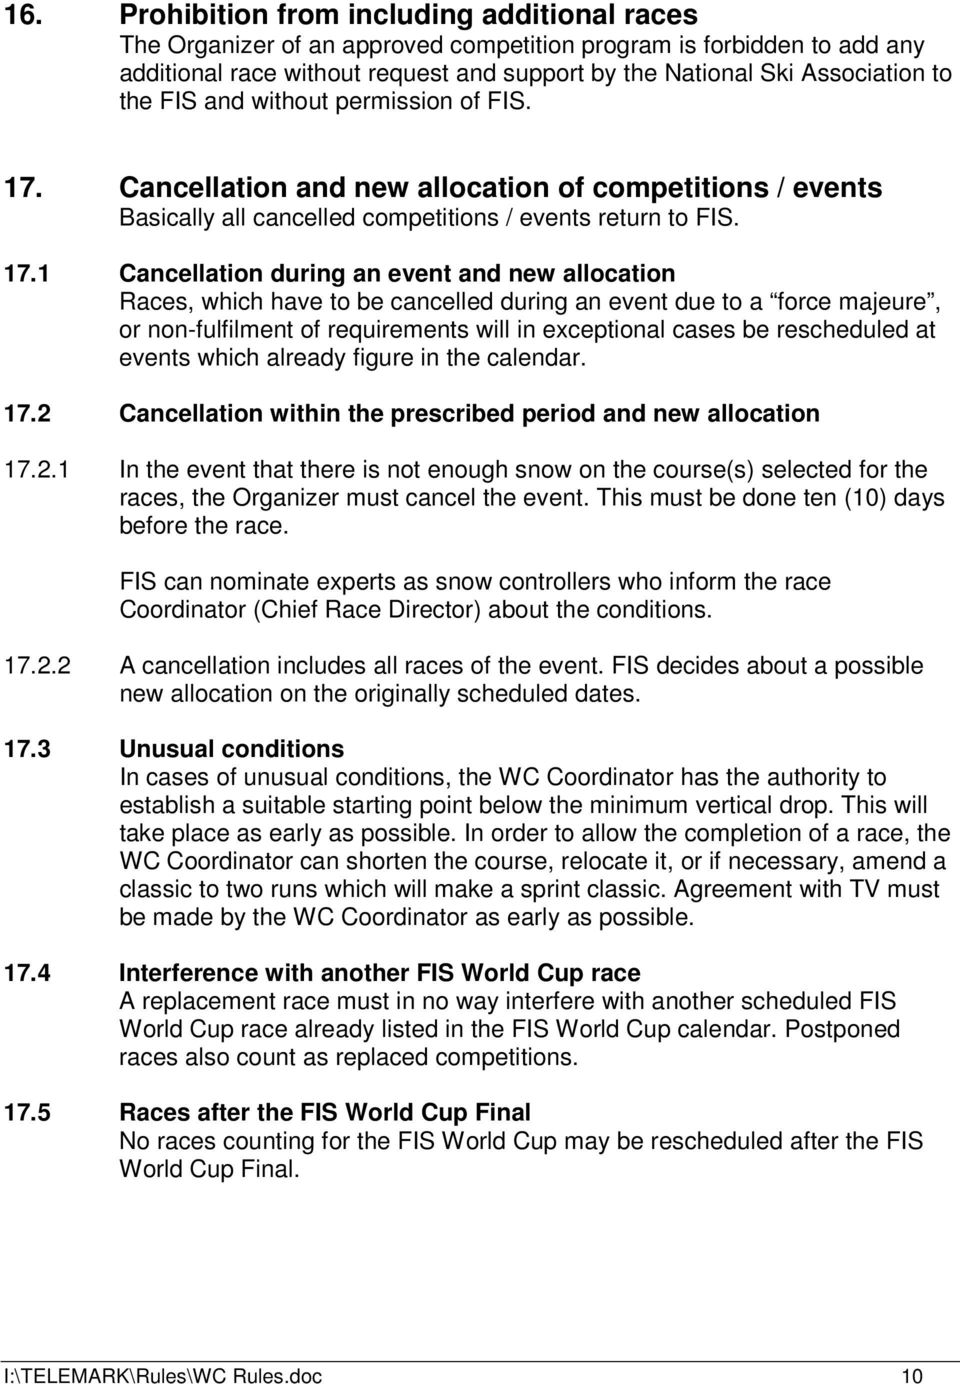 Cancellation and new allocation of competitions / events Basically all cancelled competitions / events return to FIS. 17.